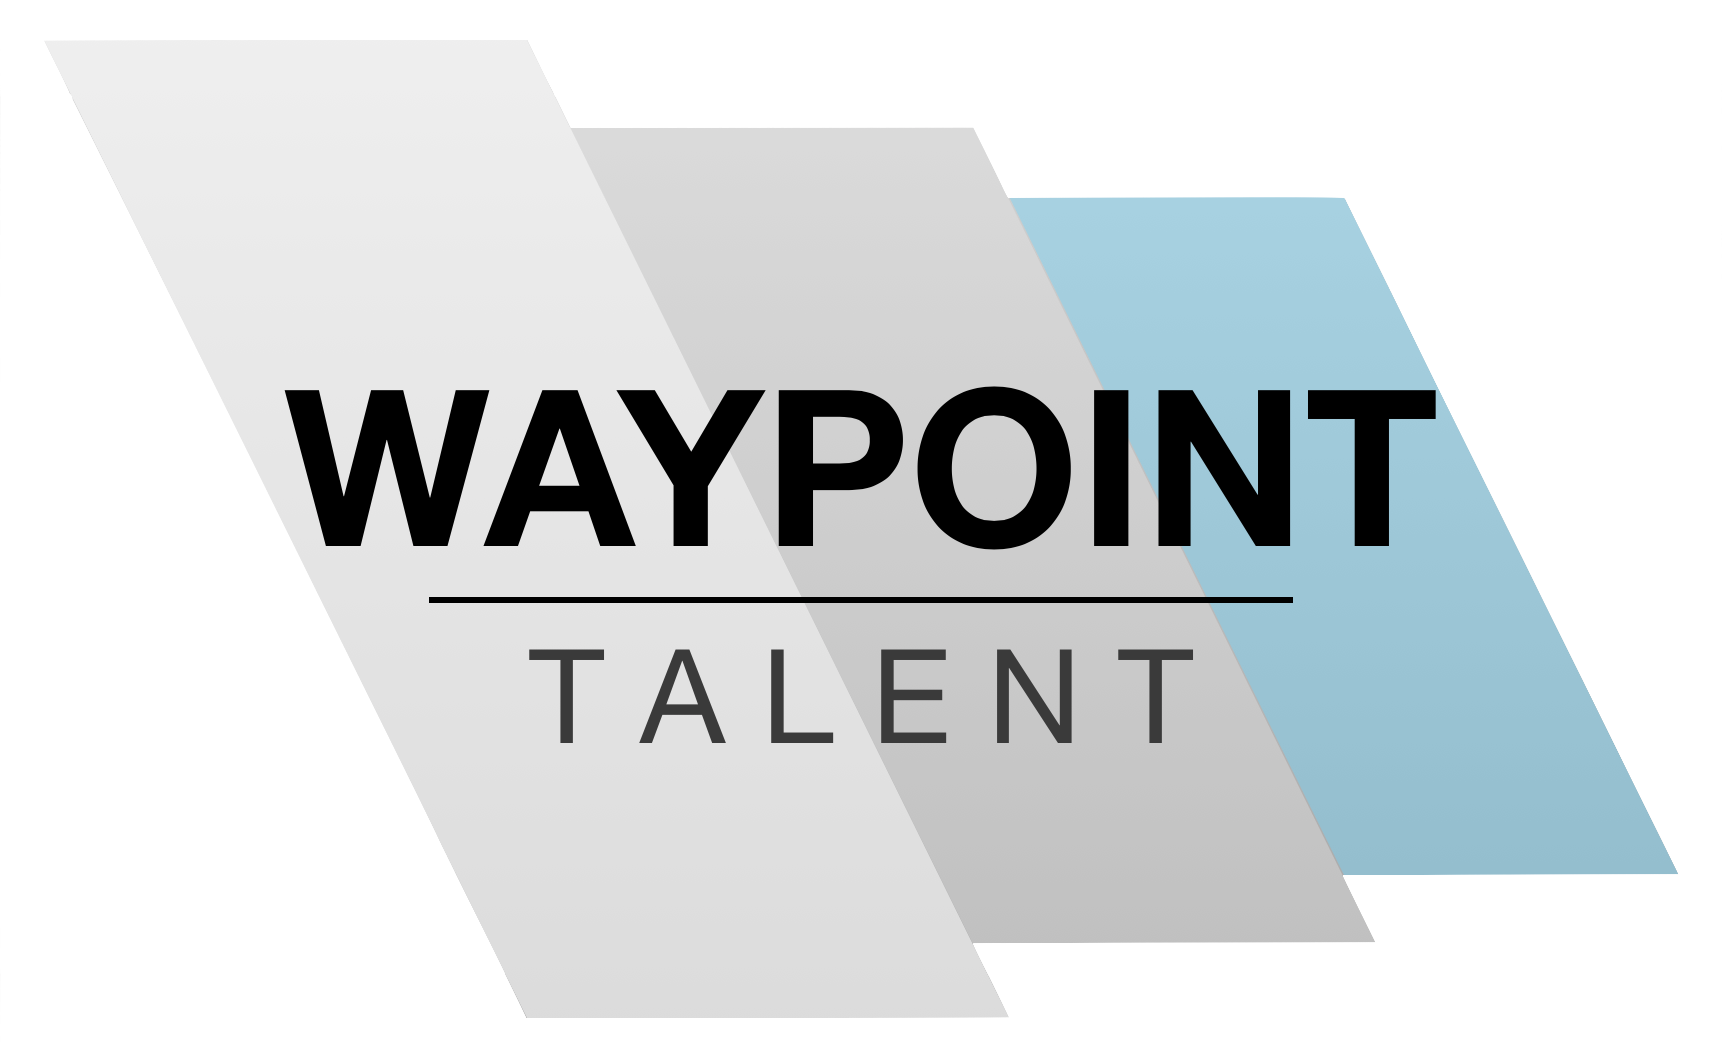 Waypoint Talent